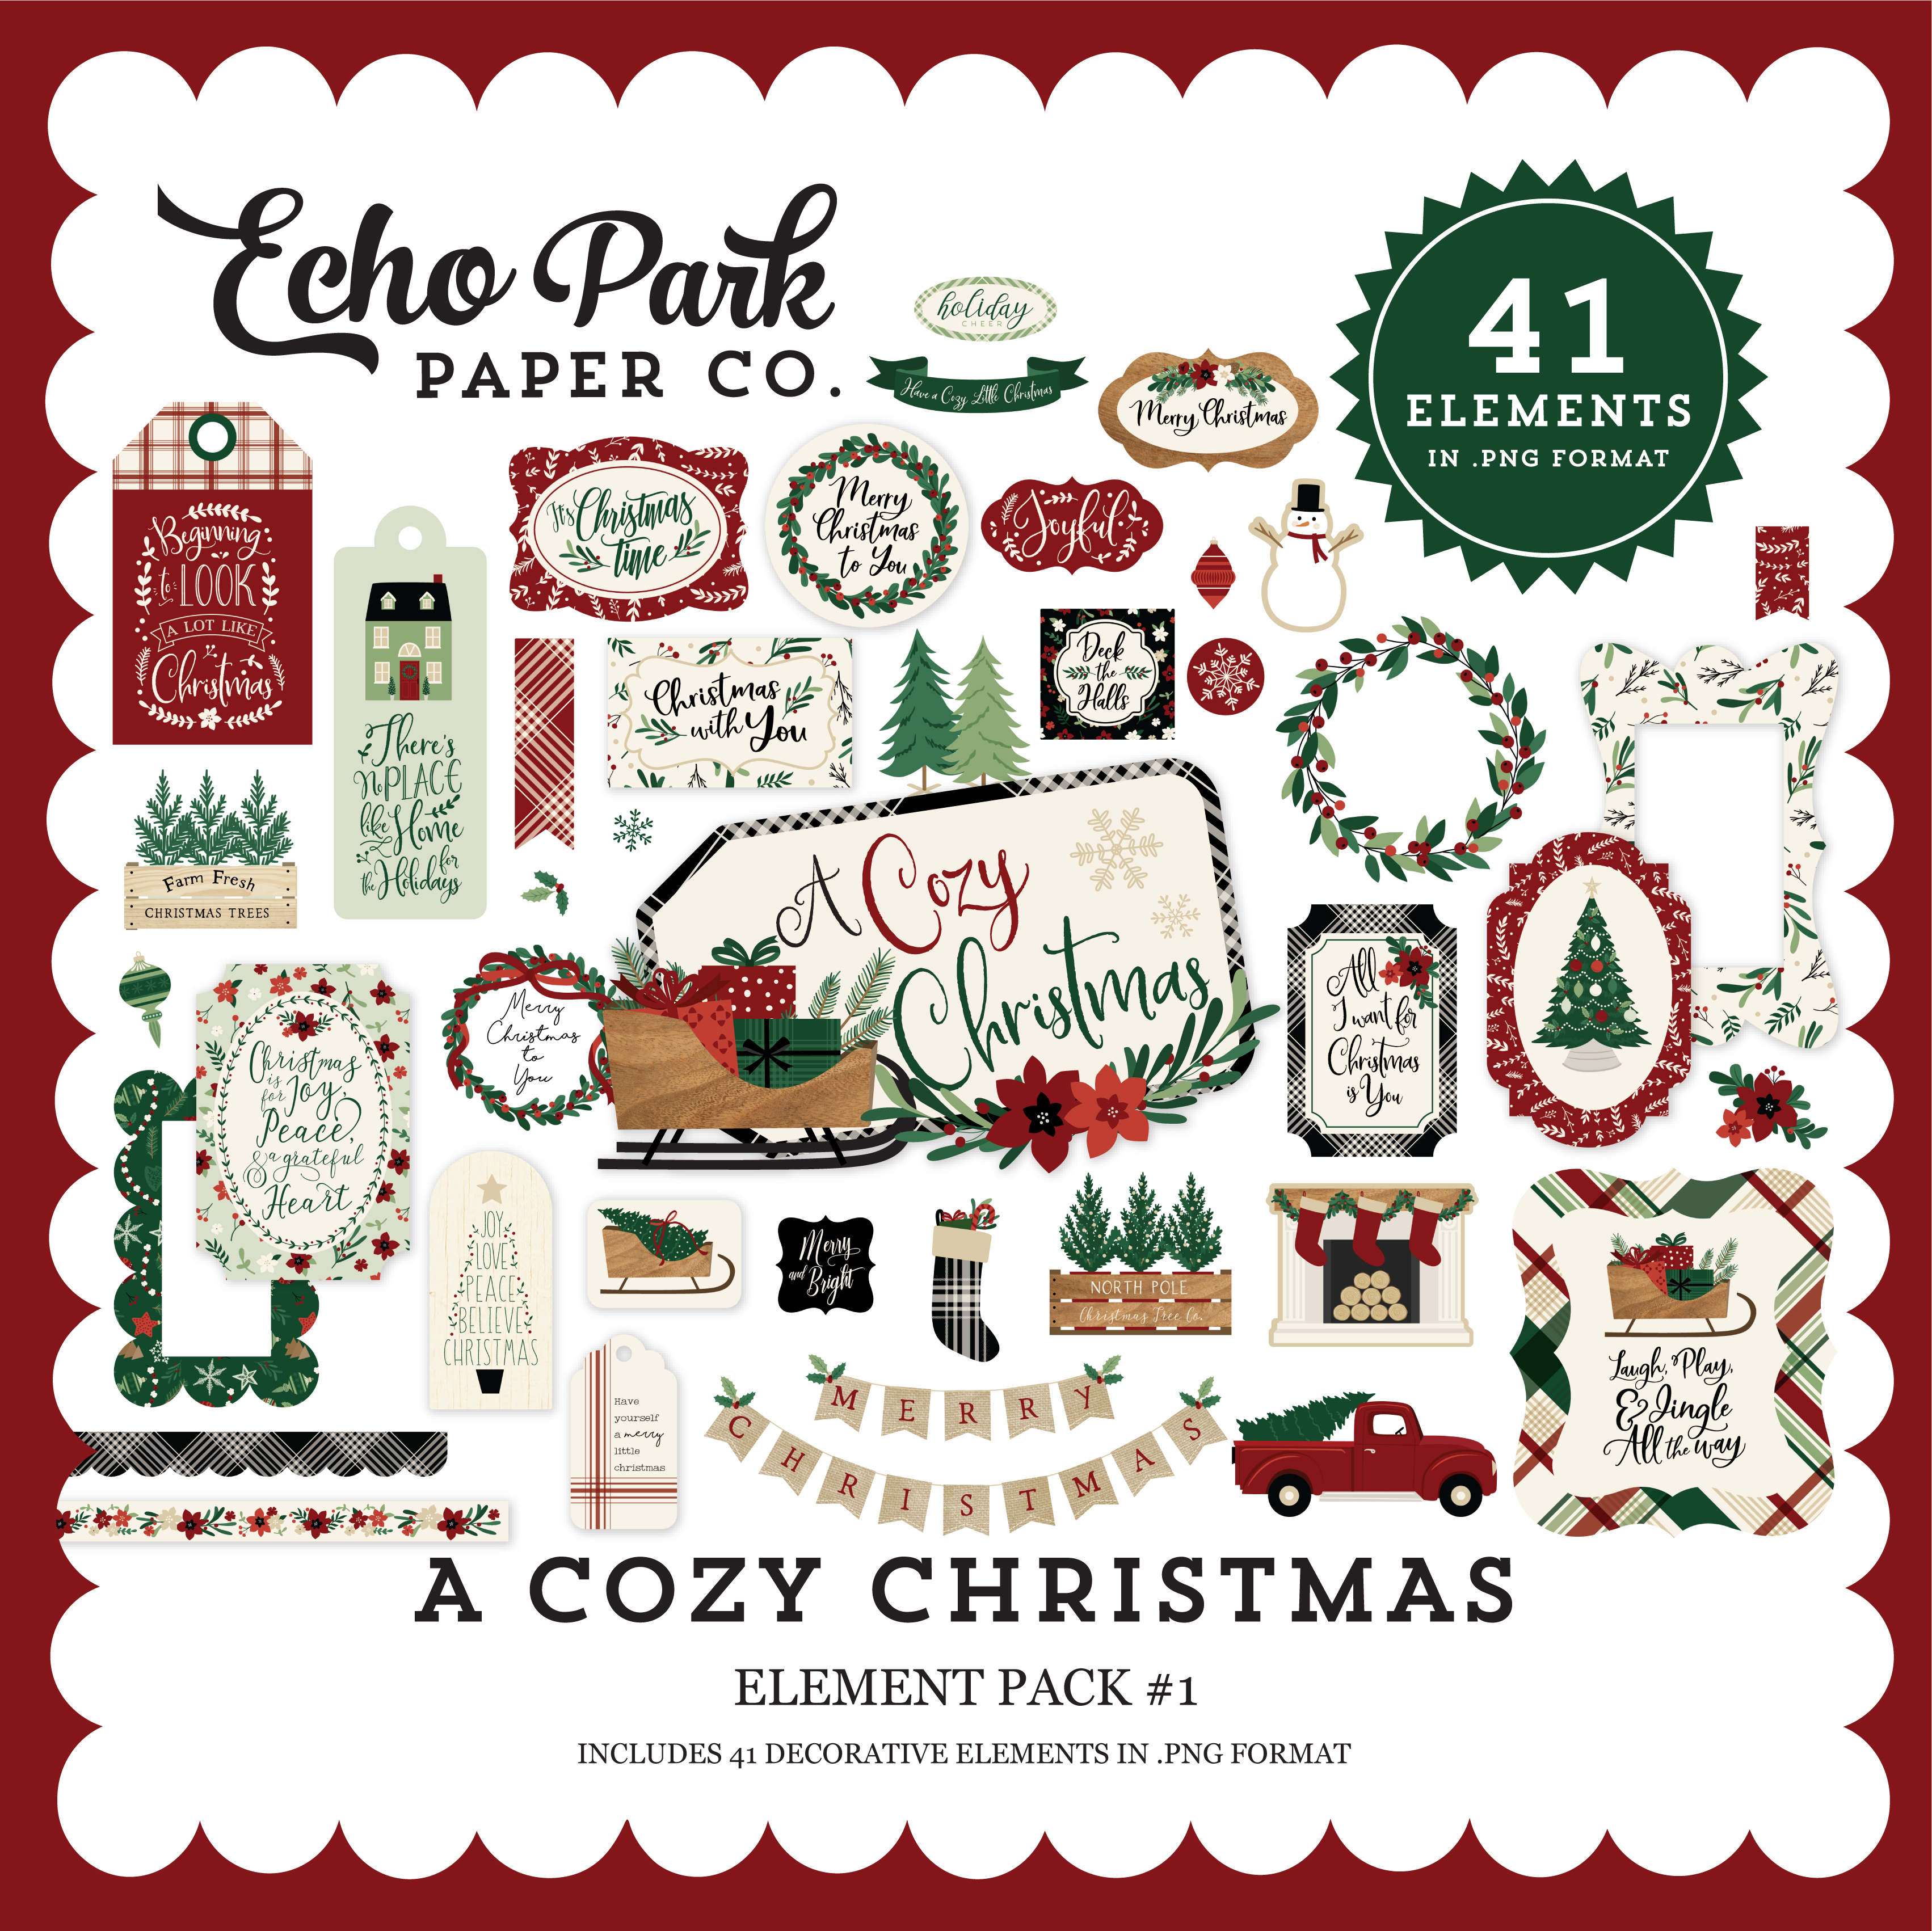 A Cozy Christmas Element Pack #1